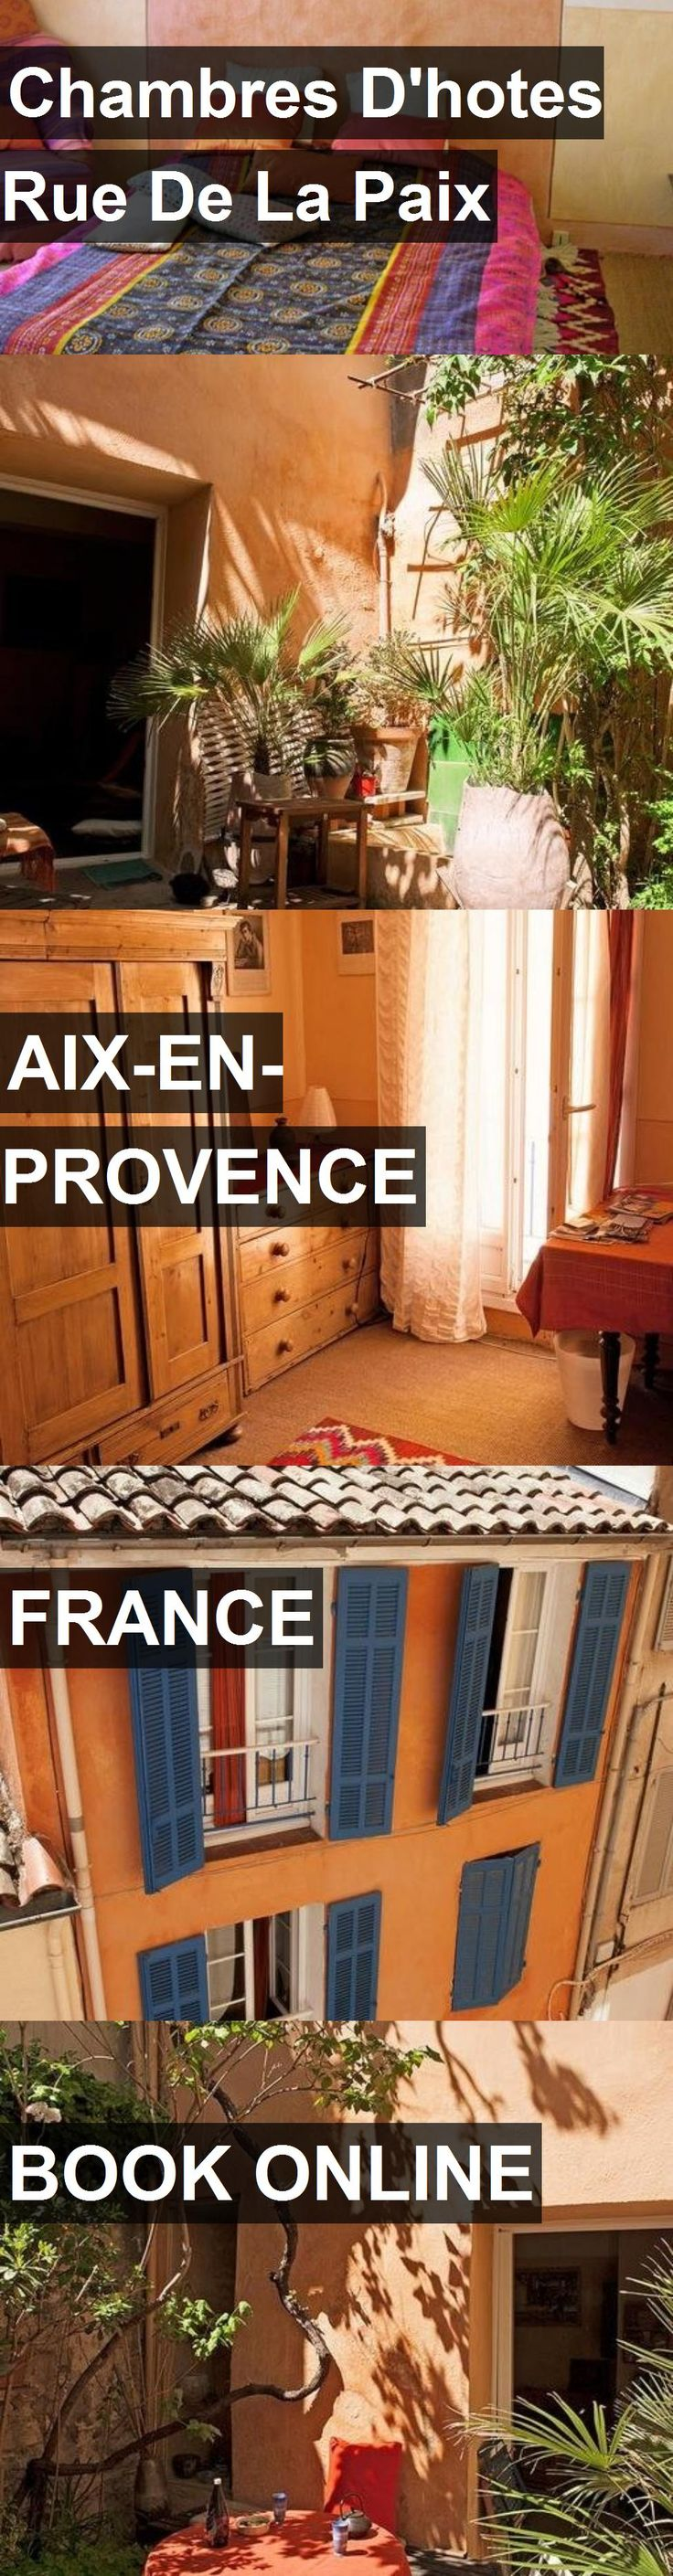 Hotel Chambres D'hotes Rue De La Paix in Aix-en-Provence, France. For more information, photos, reviews and best prices please follow the link. #France #Aix-en-Provence #ChambresD'hotesRueDeLaPaix #hotel #travel #vacation